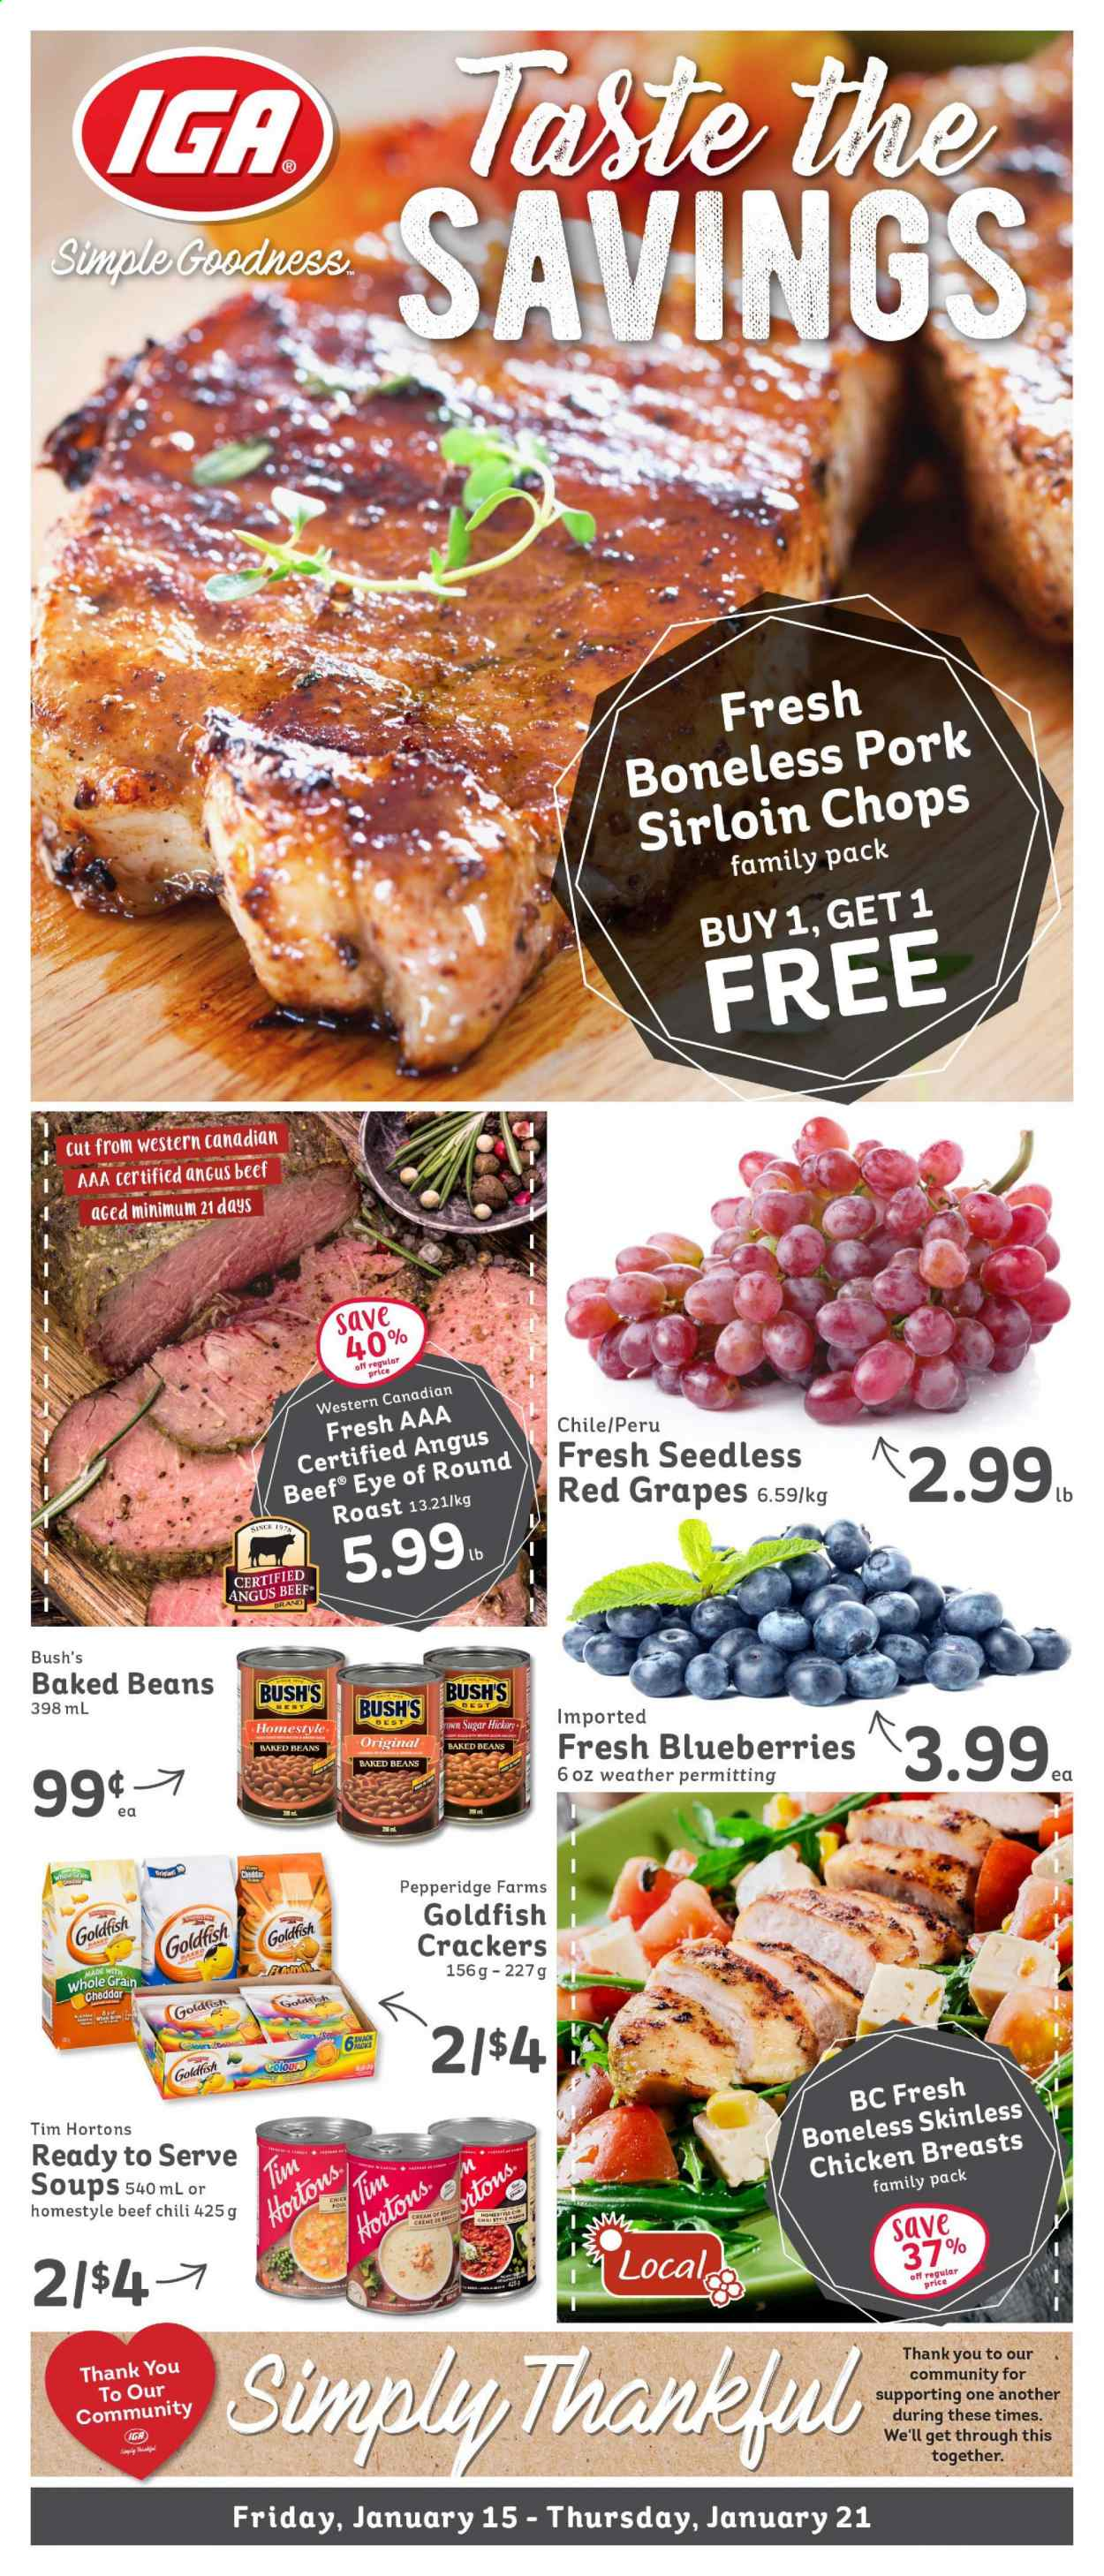 IGA Simple Goodness Flyer - January 15, 2021 - January 21, 2021 - Sales products - cheddar. Page 1.